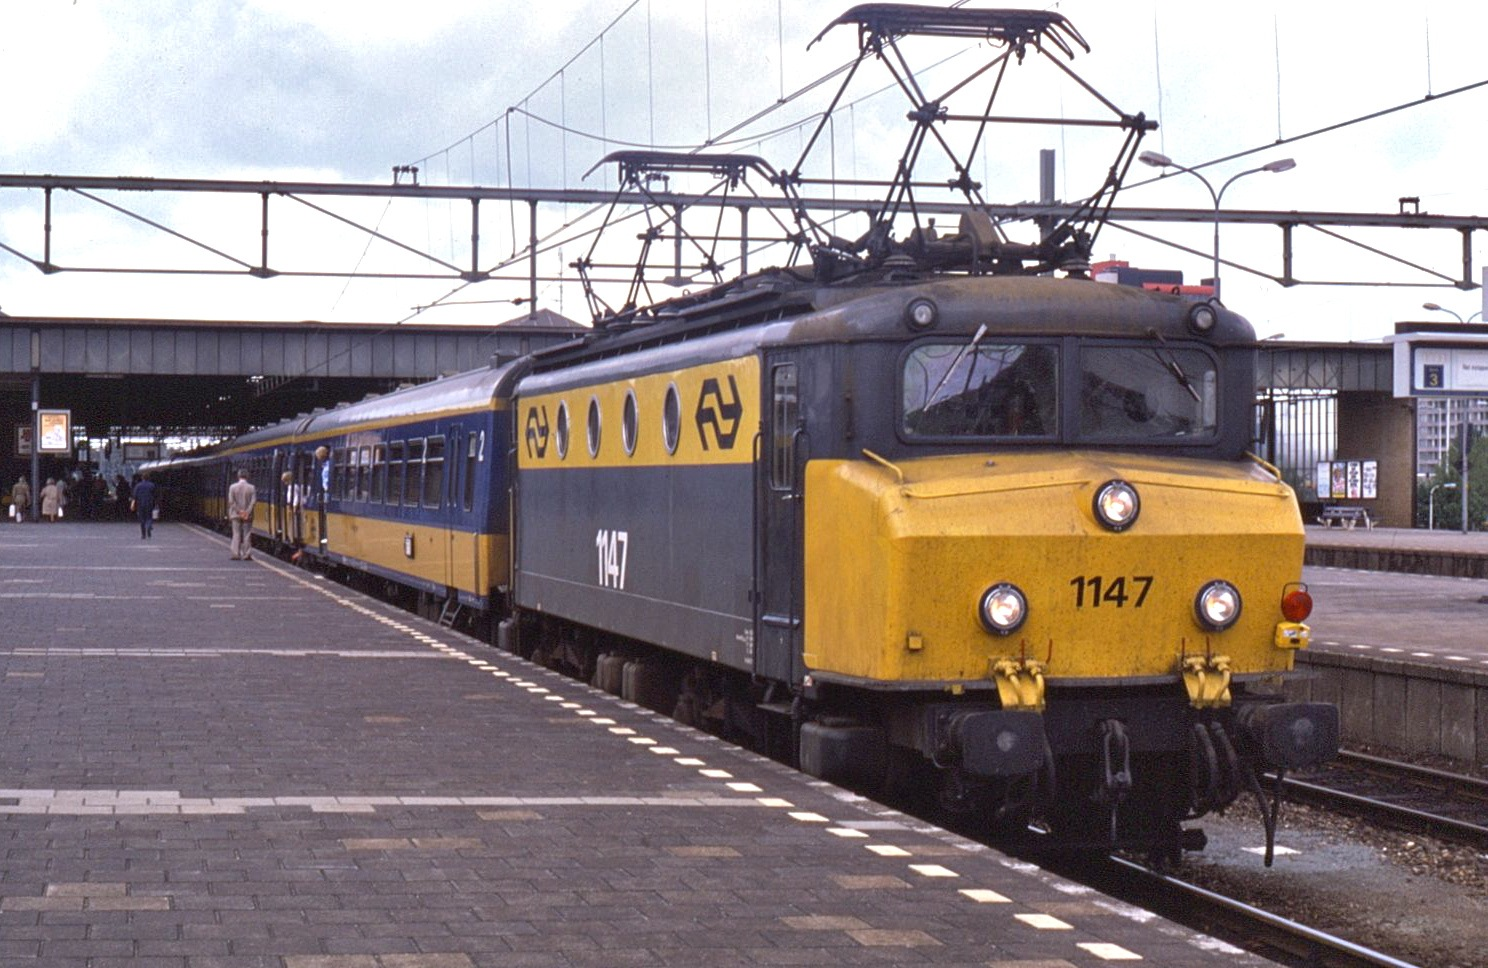 File:NS locomotive 1147 at Eindhoven in 1985, hauling an InterCity train.jpg